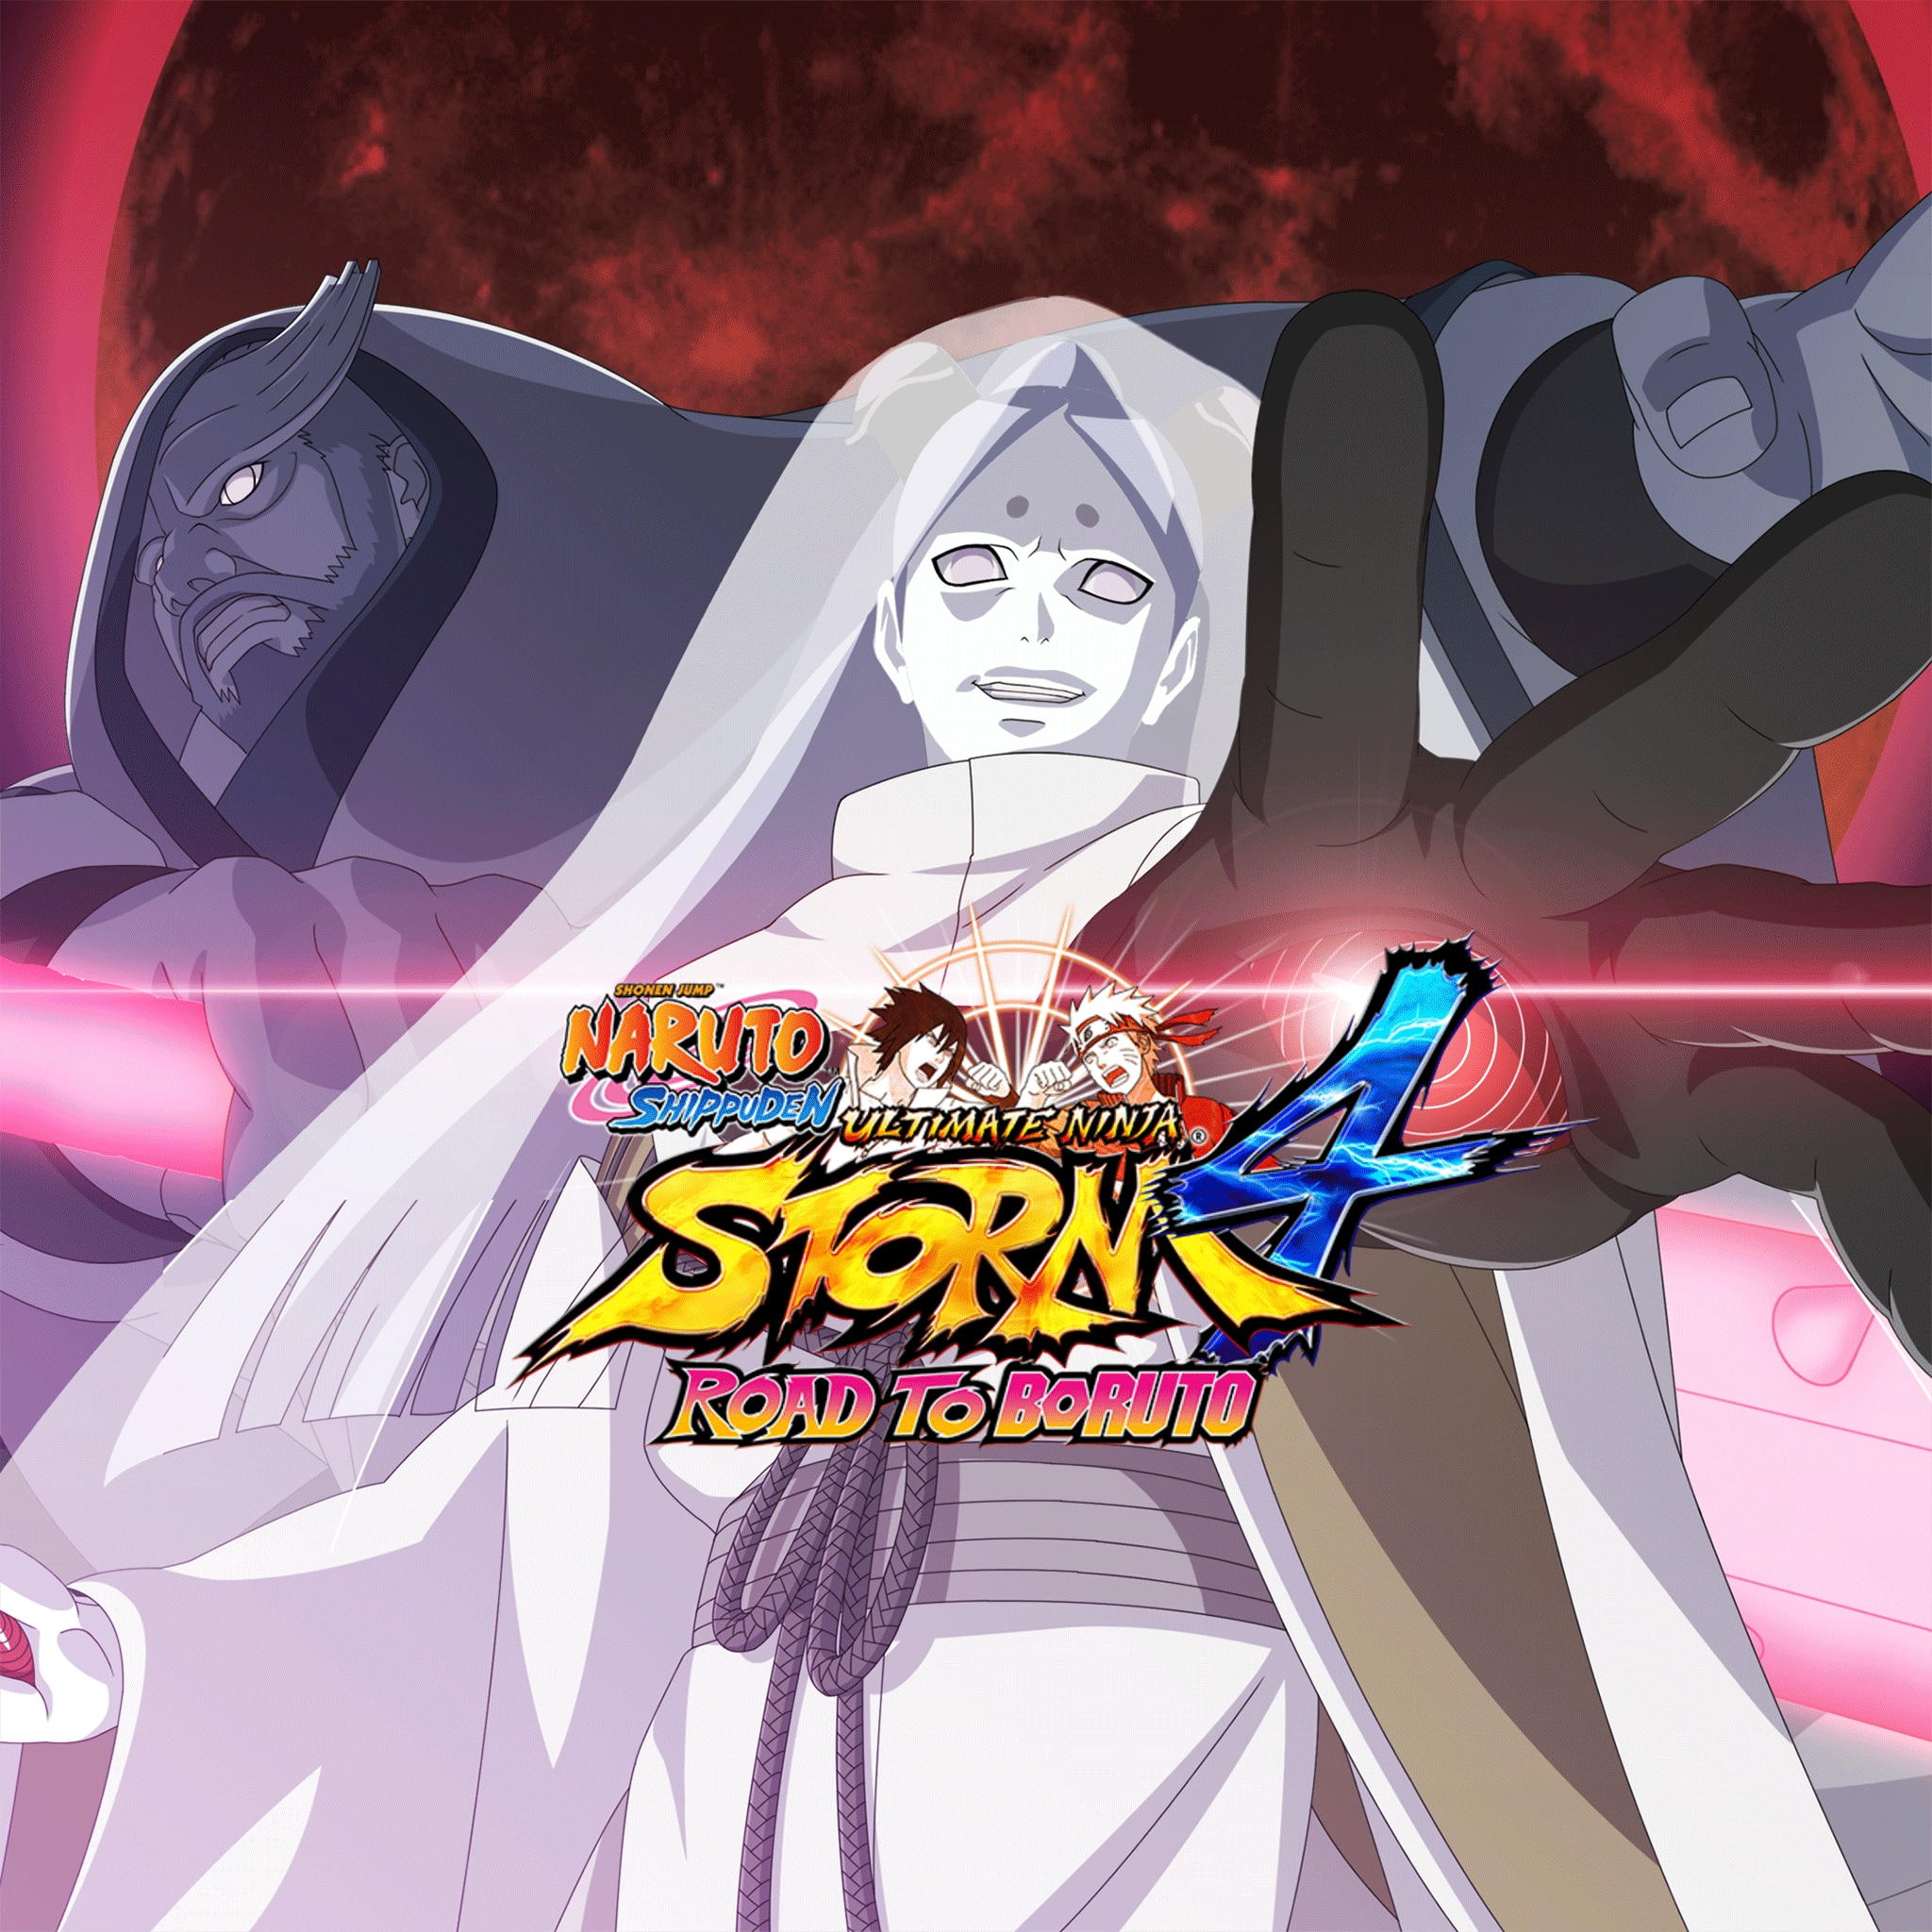 Naruto Storm 4 Road to Boruto - Next Generation Pack